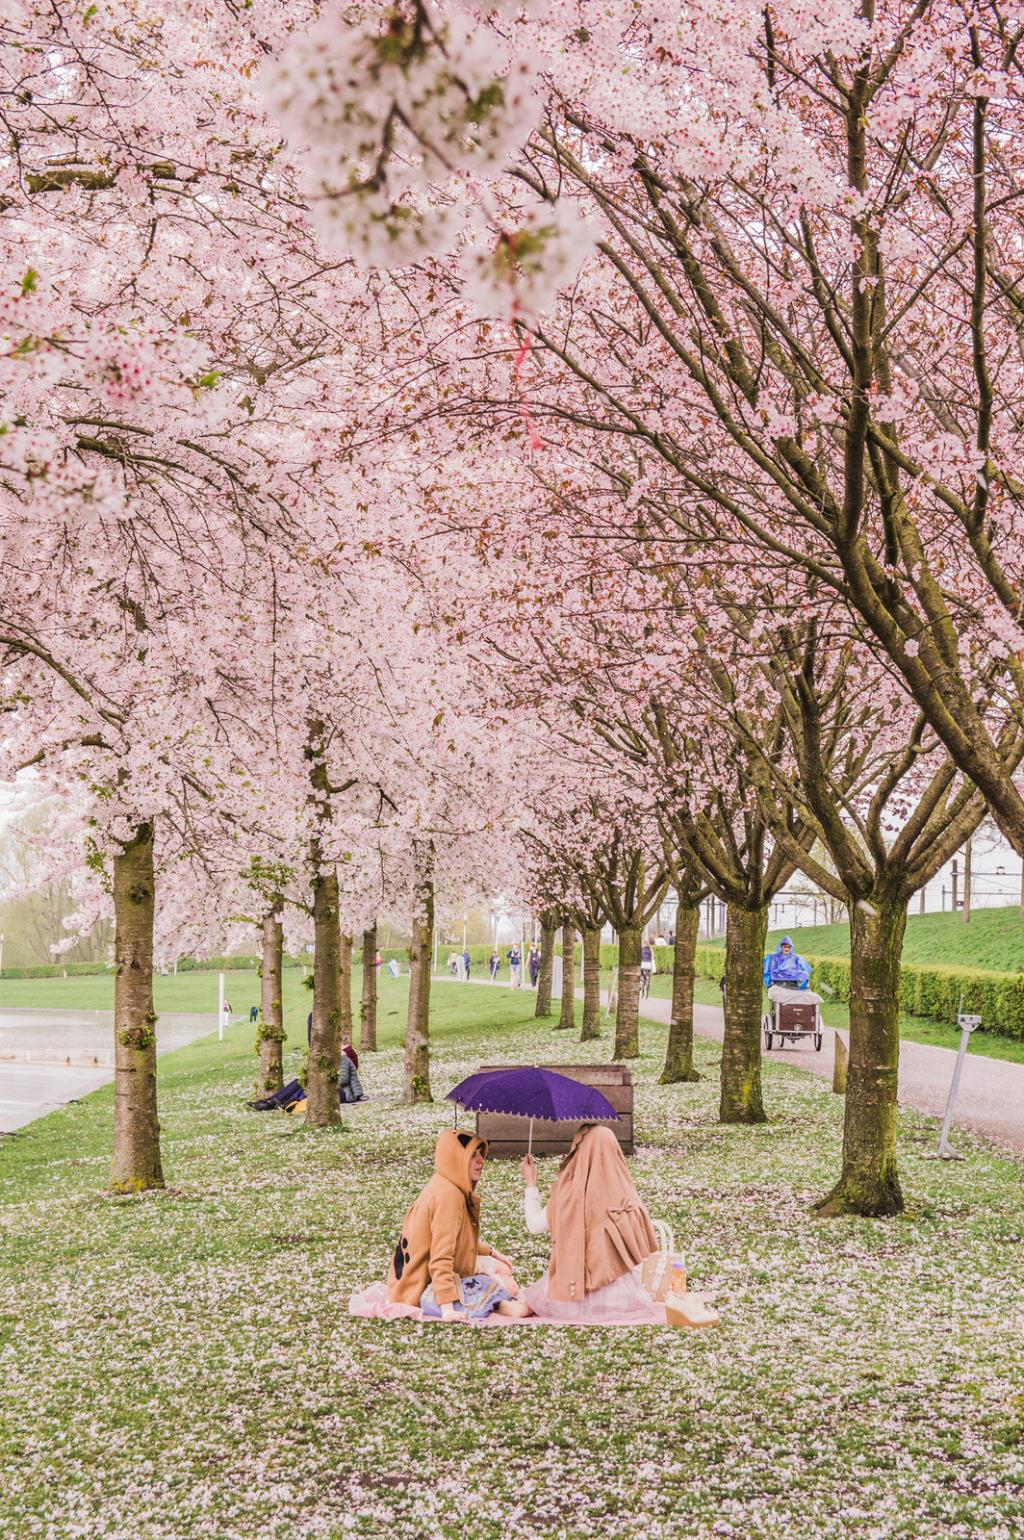 Pretty in Pink: Cherry Blossoms in Amsterdam's Westerpark